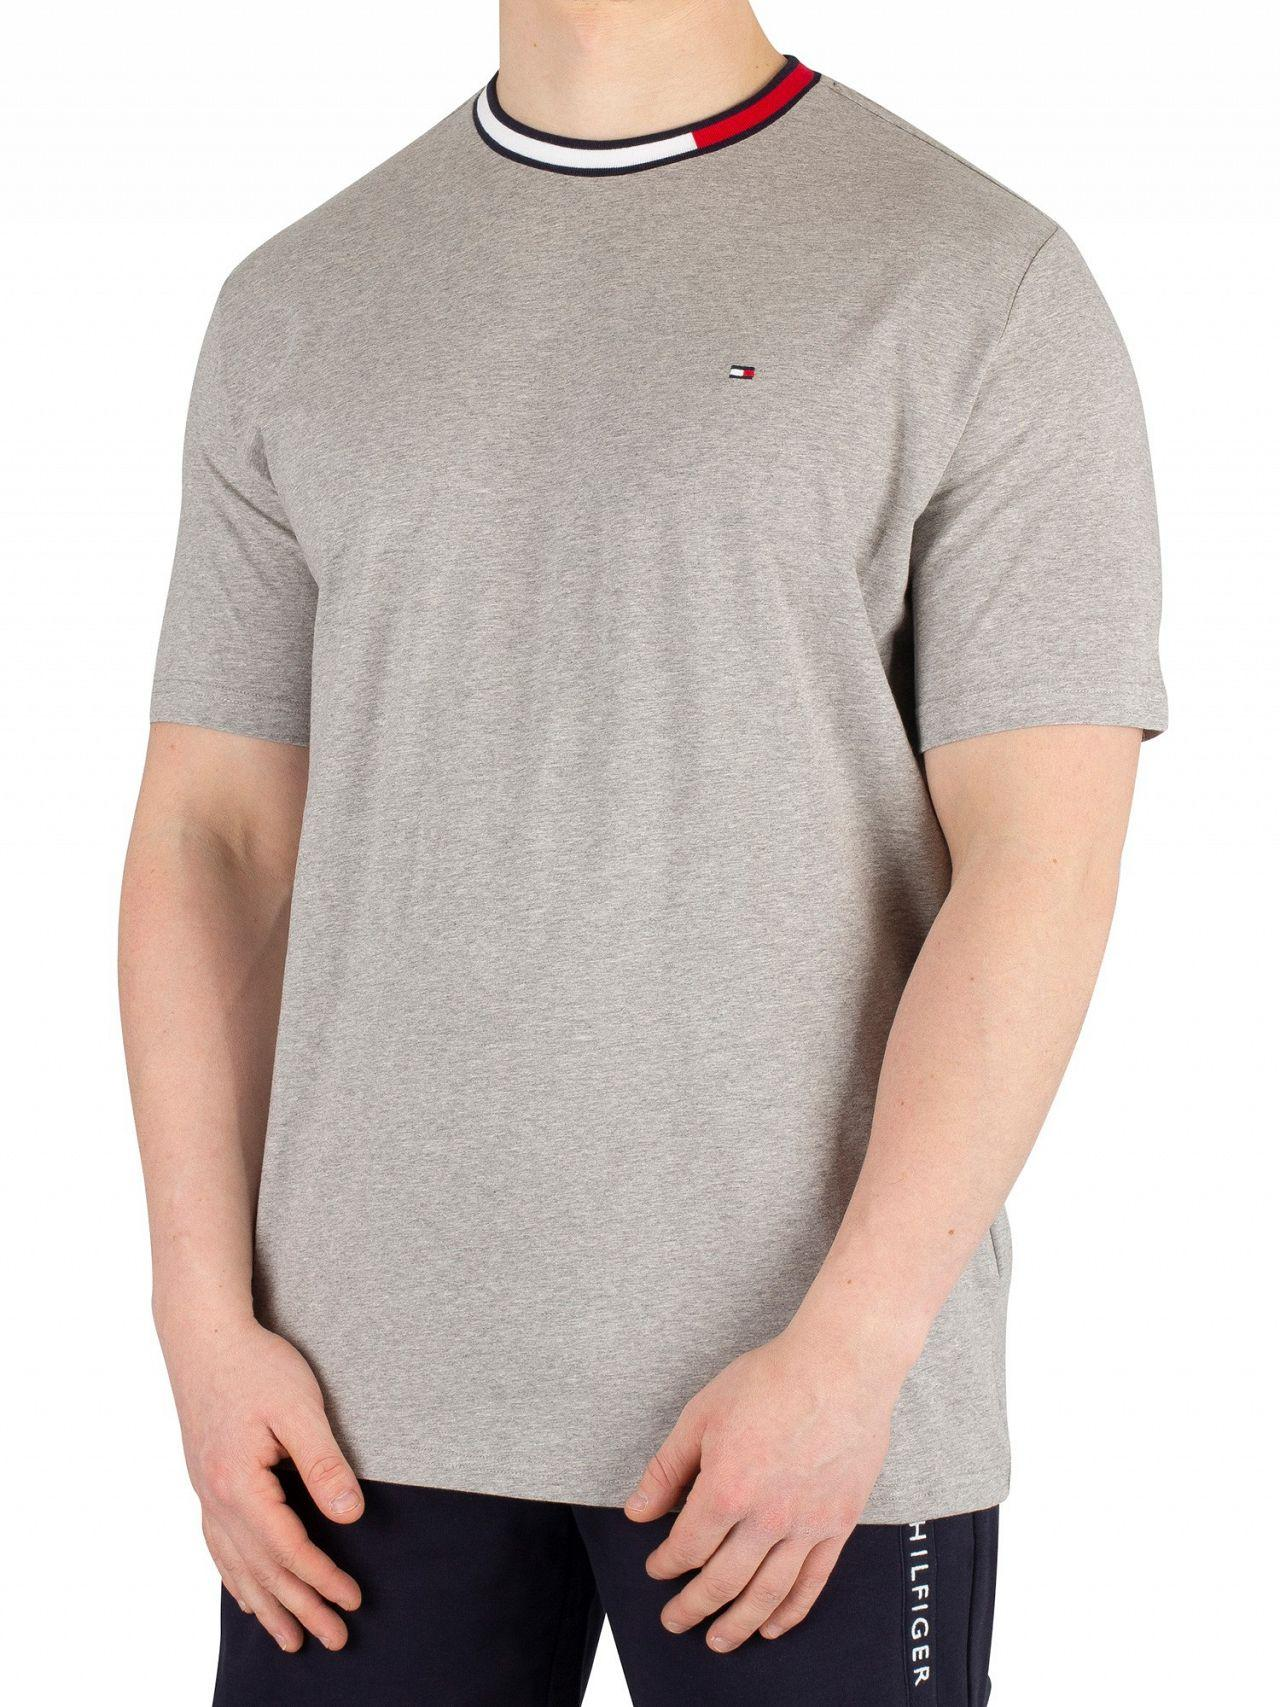 5f9d8161 Tommy Hilfiger Grey Heather Logo Collar T-shirt in Gray for Men - Lyst